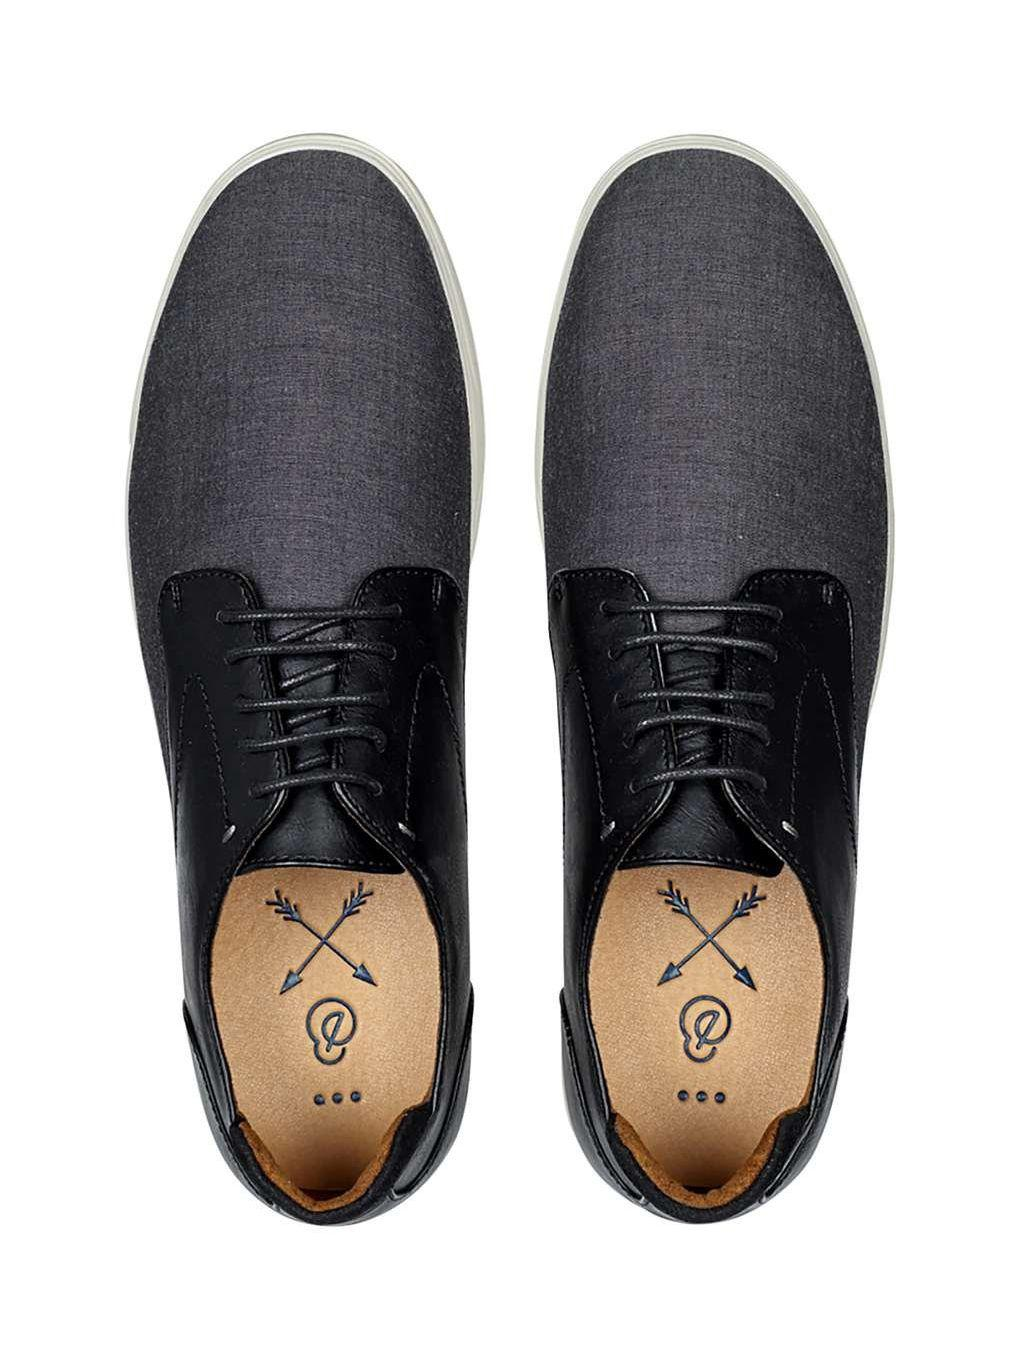 Burton Synthetic Black Chambray Derby Shoes for Men